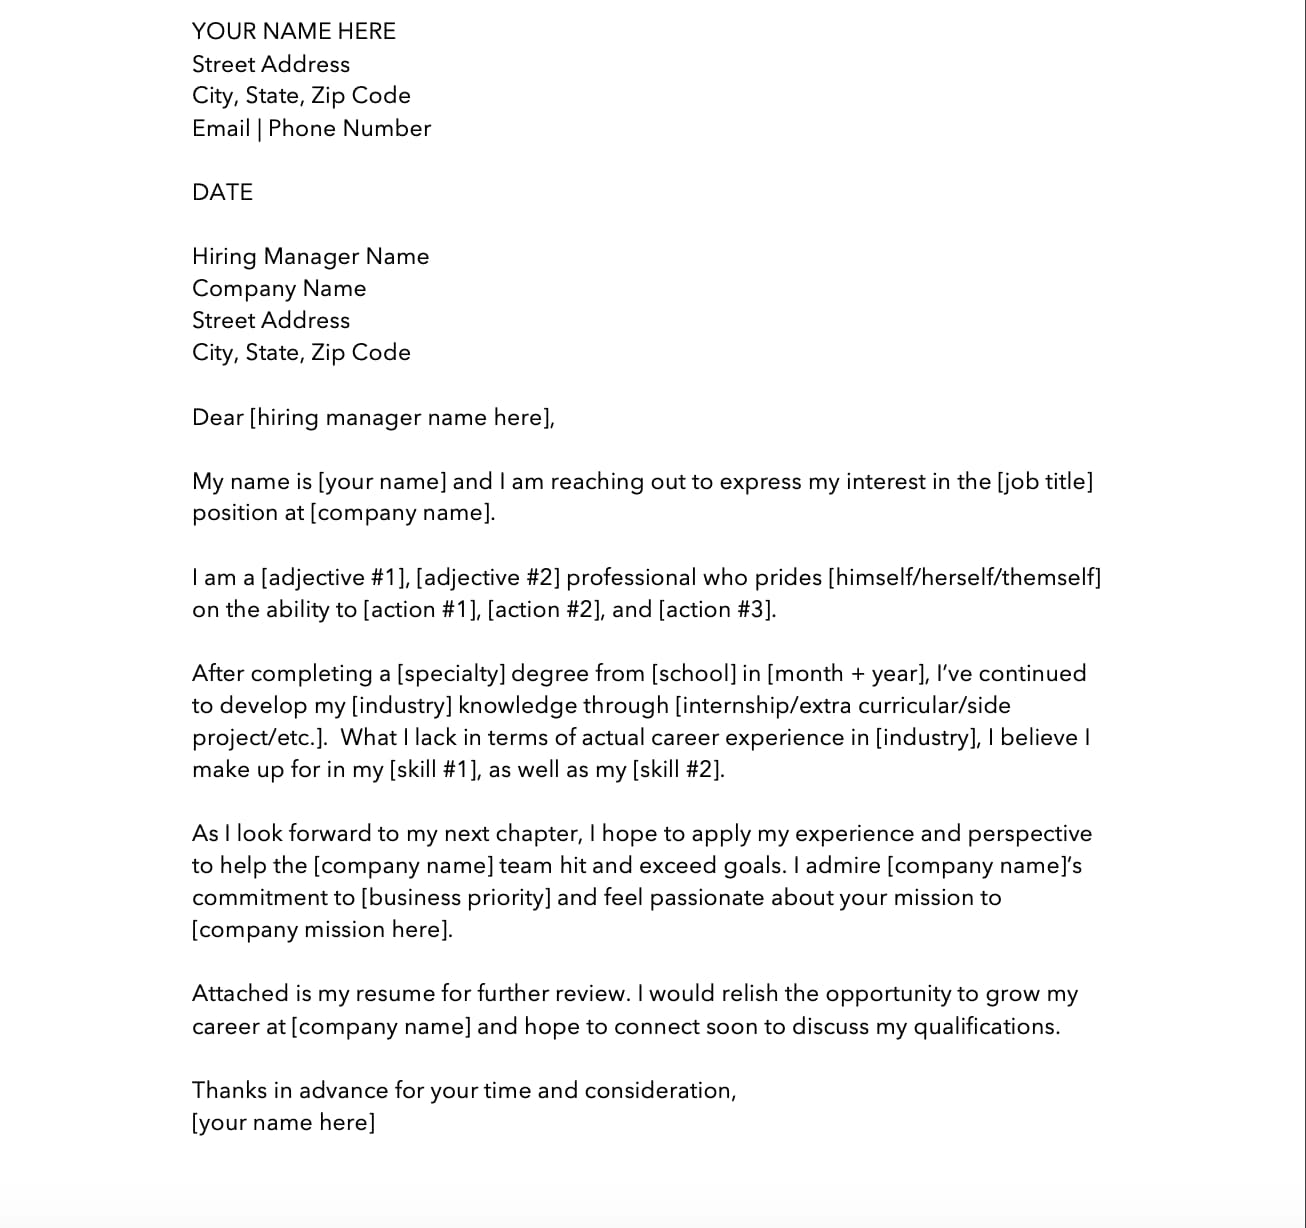 cover letter templates to perfect your next job application for resume entry level Resume Job Application Cover Letter For Resume